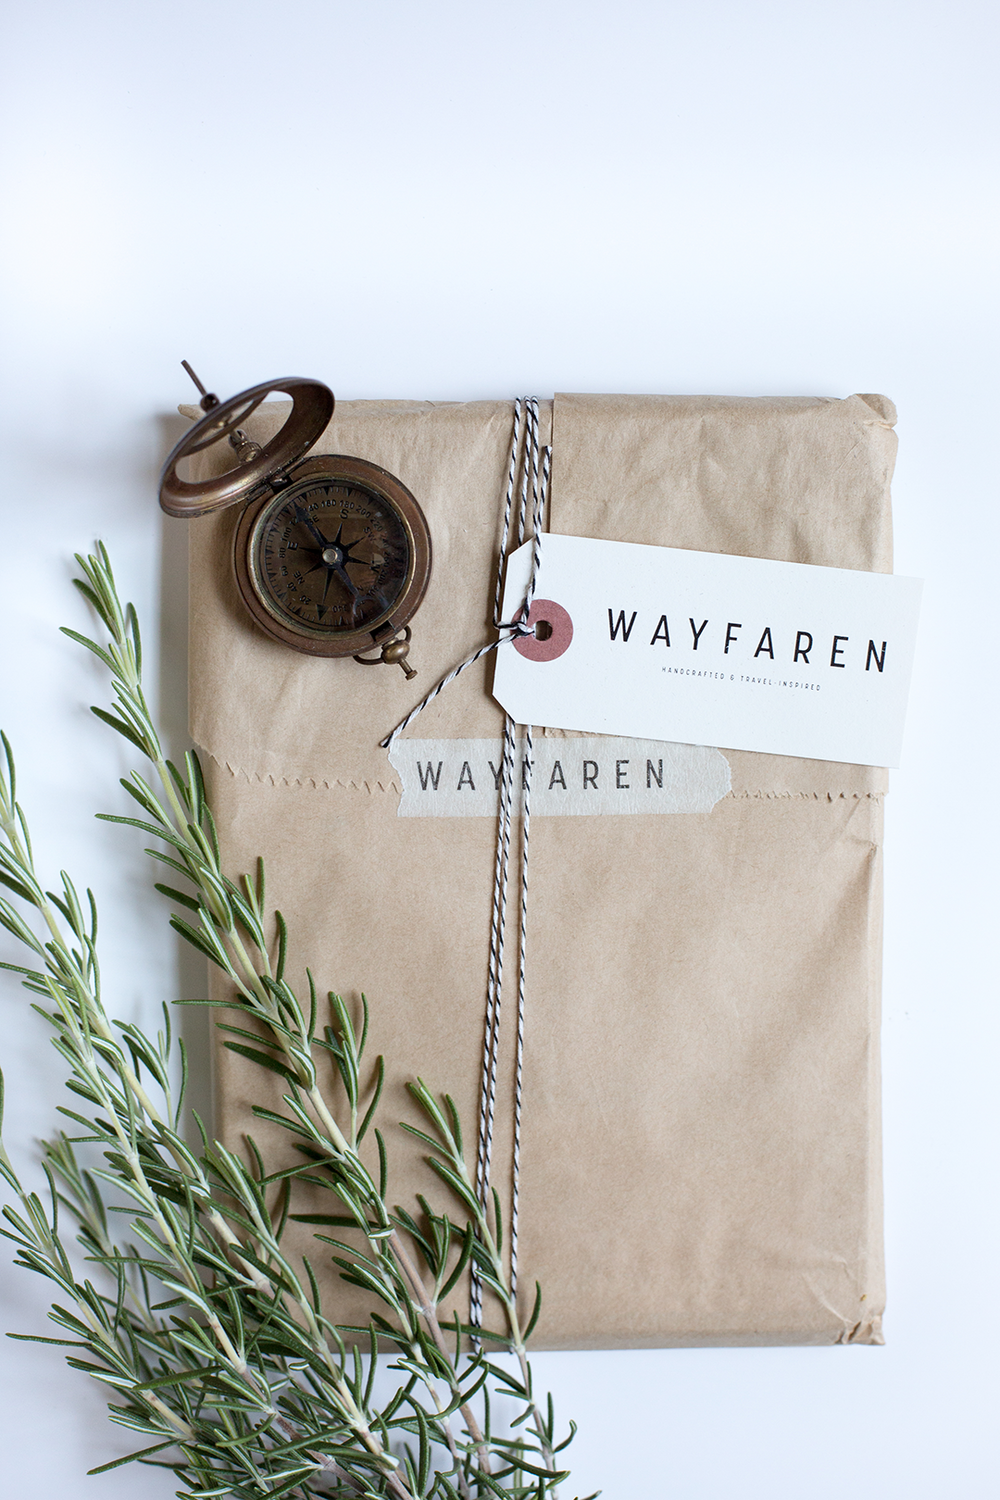 wayfaren travel journal